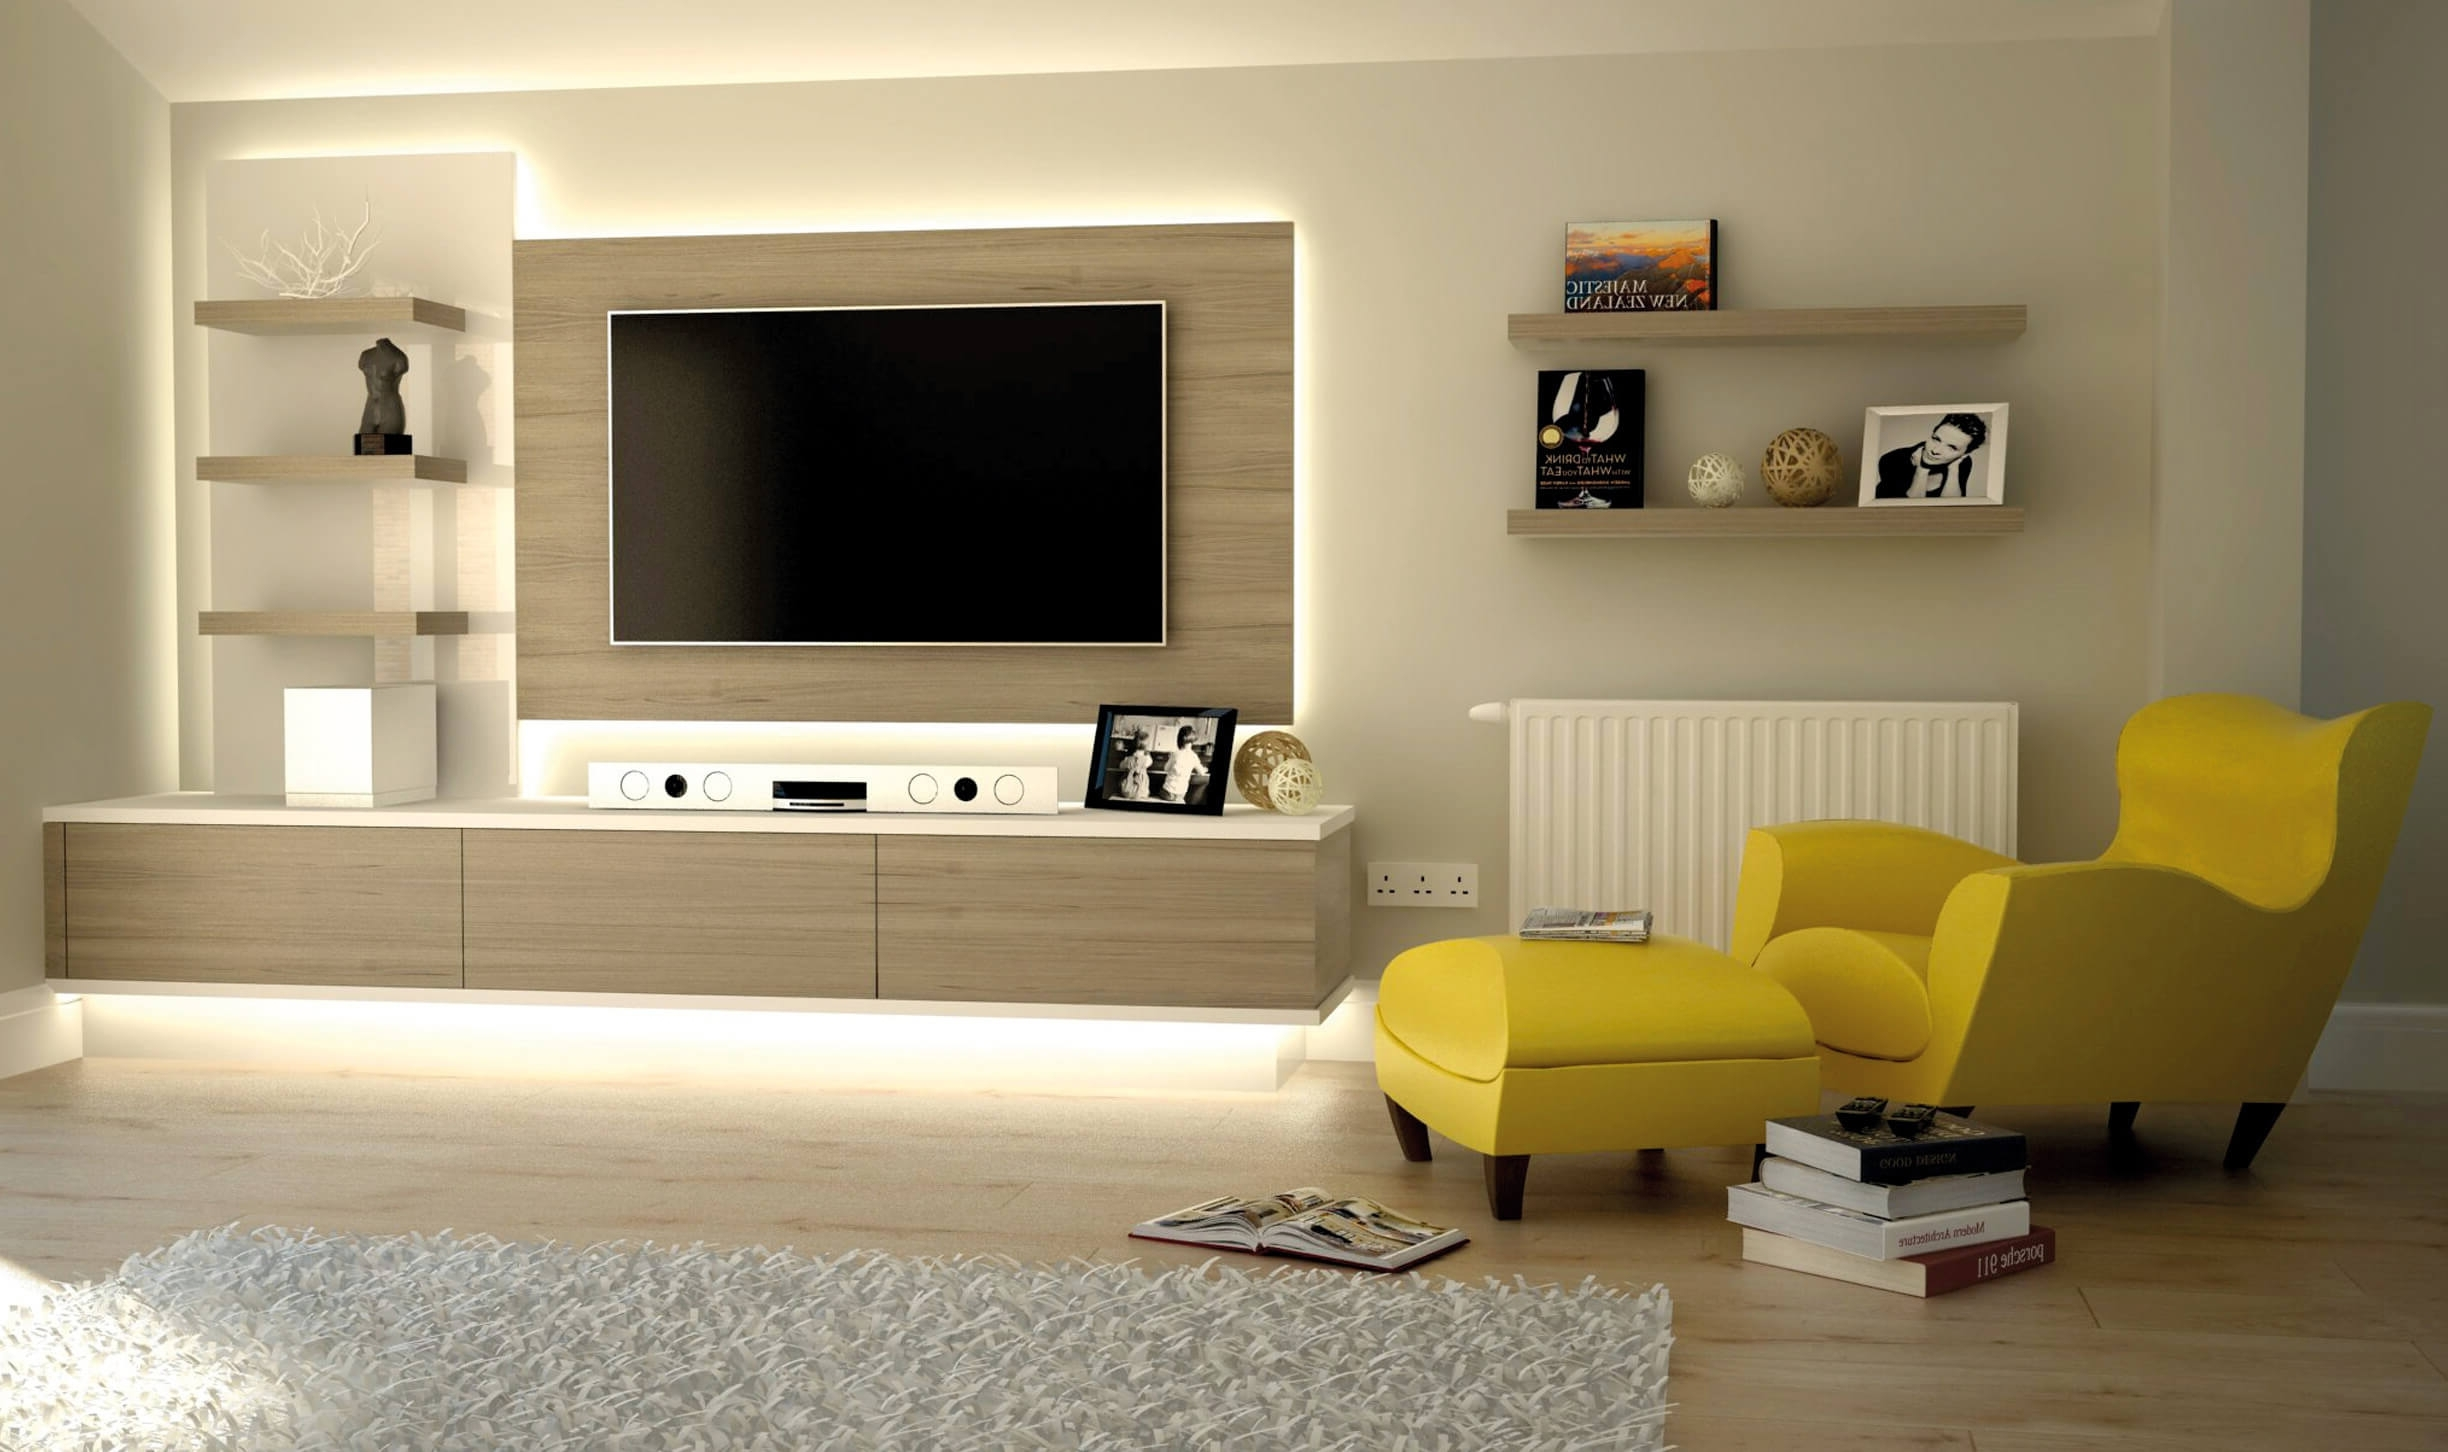 Most Recent Bespoke Tv Cabinets Bookcases And Storage Units For Over Living With Bespoke Tv Units (View 13 of 15)